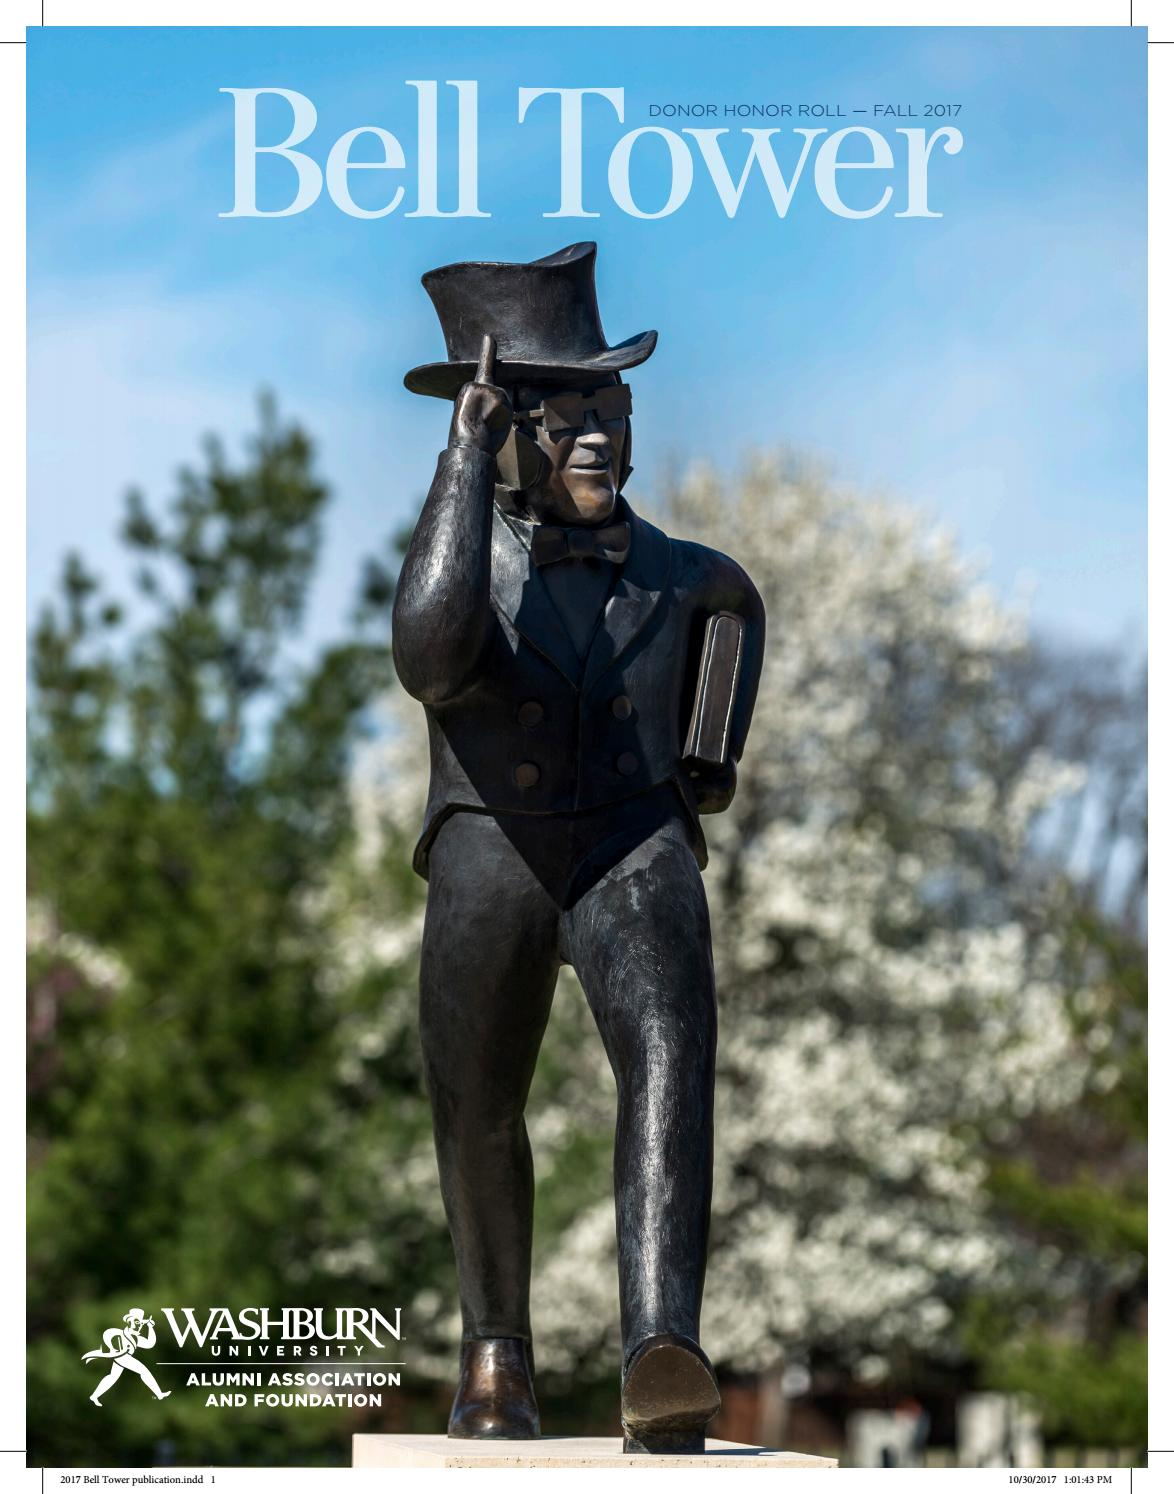 2017 Bell Tower publication